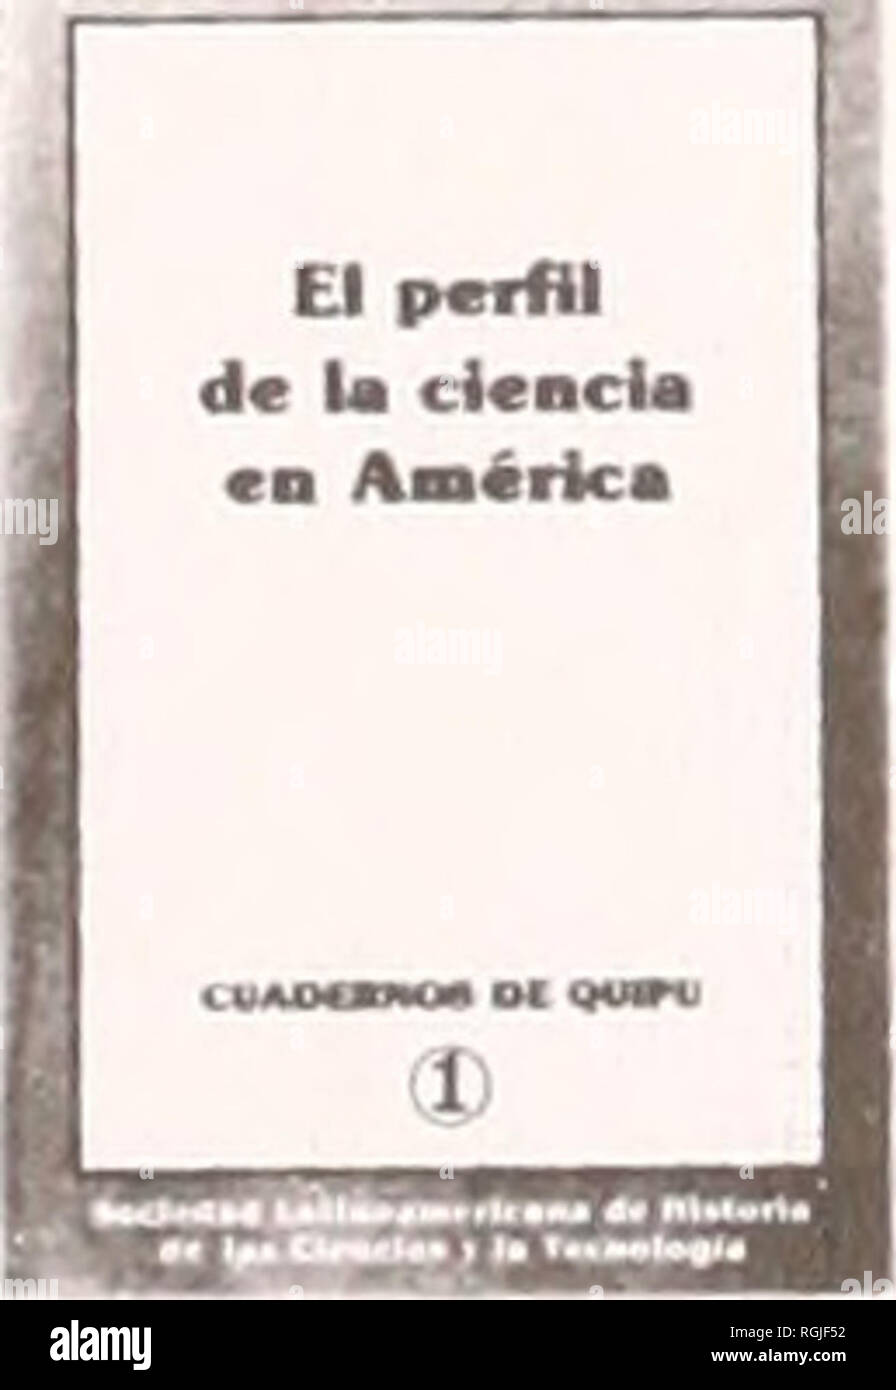 . Bulletin of the British Museum (Natural History). A complementary collection of Quipu is: QUIPU NOTEBOOKS The price of each volume, including postage and handling: Latin America: US$10 All other regions: US $ 15. â â¢.:'.. :. ::Tilt .: â i3f: Orders and suscriptions by check or money order: Quipu. Apartado Postal 21-873,04000Mexico,D.F.MEXICO. Please note that these images are extracted from scanned page images that may have been digitally enhanced for readability - coloration and appearance of these illustrations may not perfectly resemble the original work.. British Museum (Natural History - Stock Image